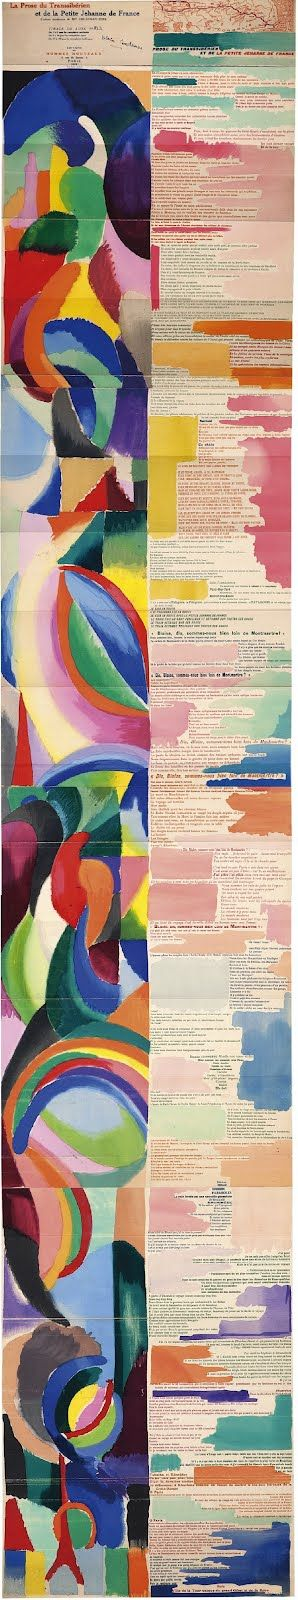 Sonia Delaunay and Blaise Cendrars' collaboration on the printed version of Cendrars' poem, Prose on the Trans-Siberian and of Little Jehanne of France, 1 9 1 3. The text runs vertically and unfolds to more than six feet. Delaunay's imagery was done with a stencil but shows the effects of hand-manipulated inks. Éditions des Hommes Nouveaux.